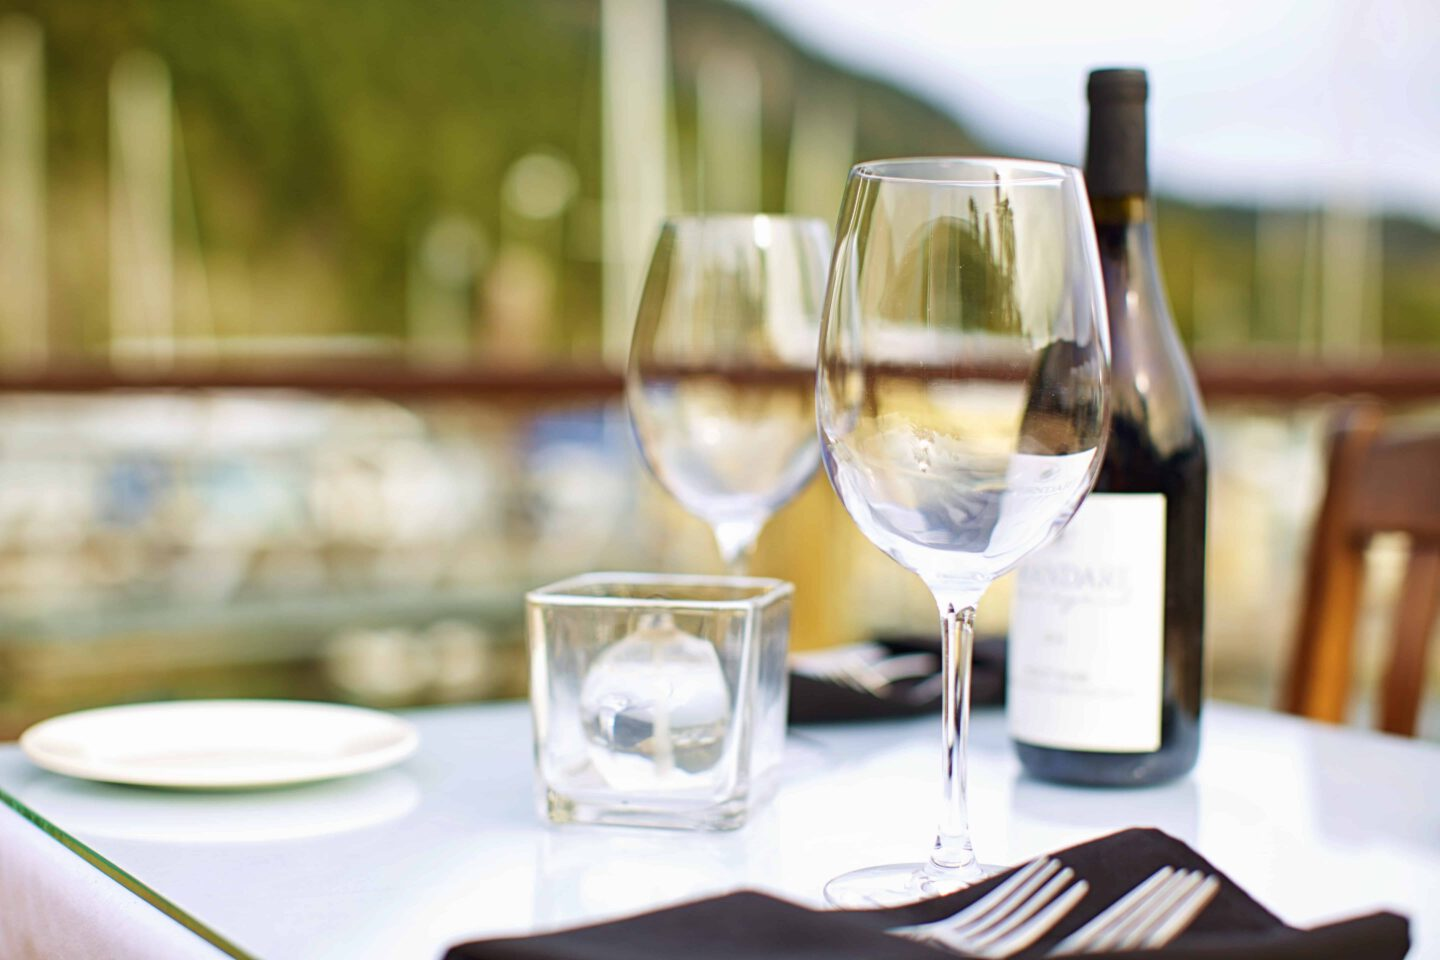 Some of the best vineyards in B.C. are found in the Cowichan Valley- all of which offer tours of the facilities and better yet, wine tasting and pairings.